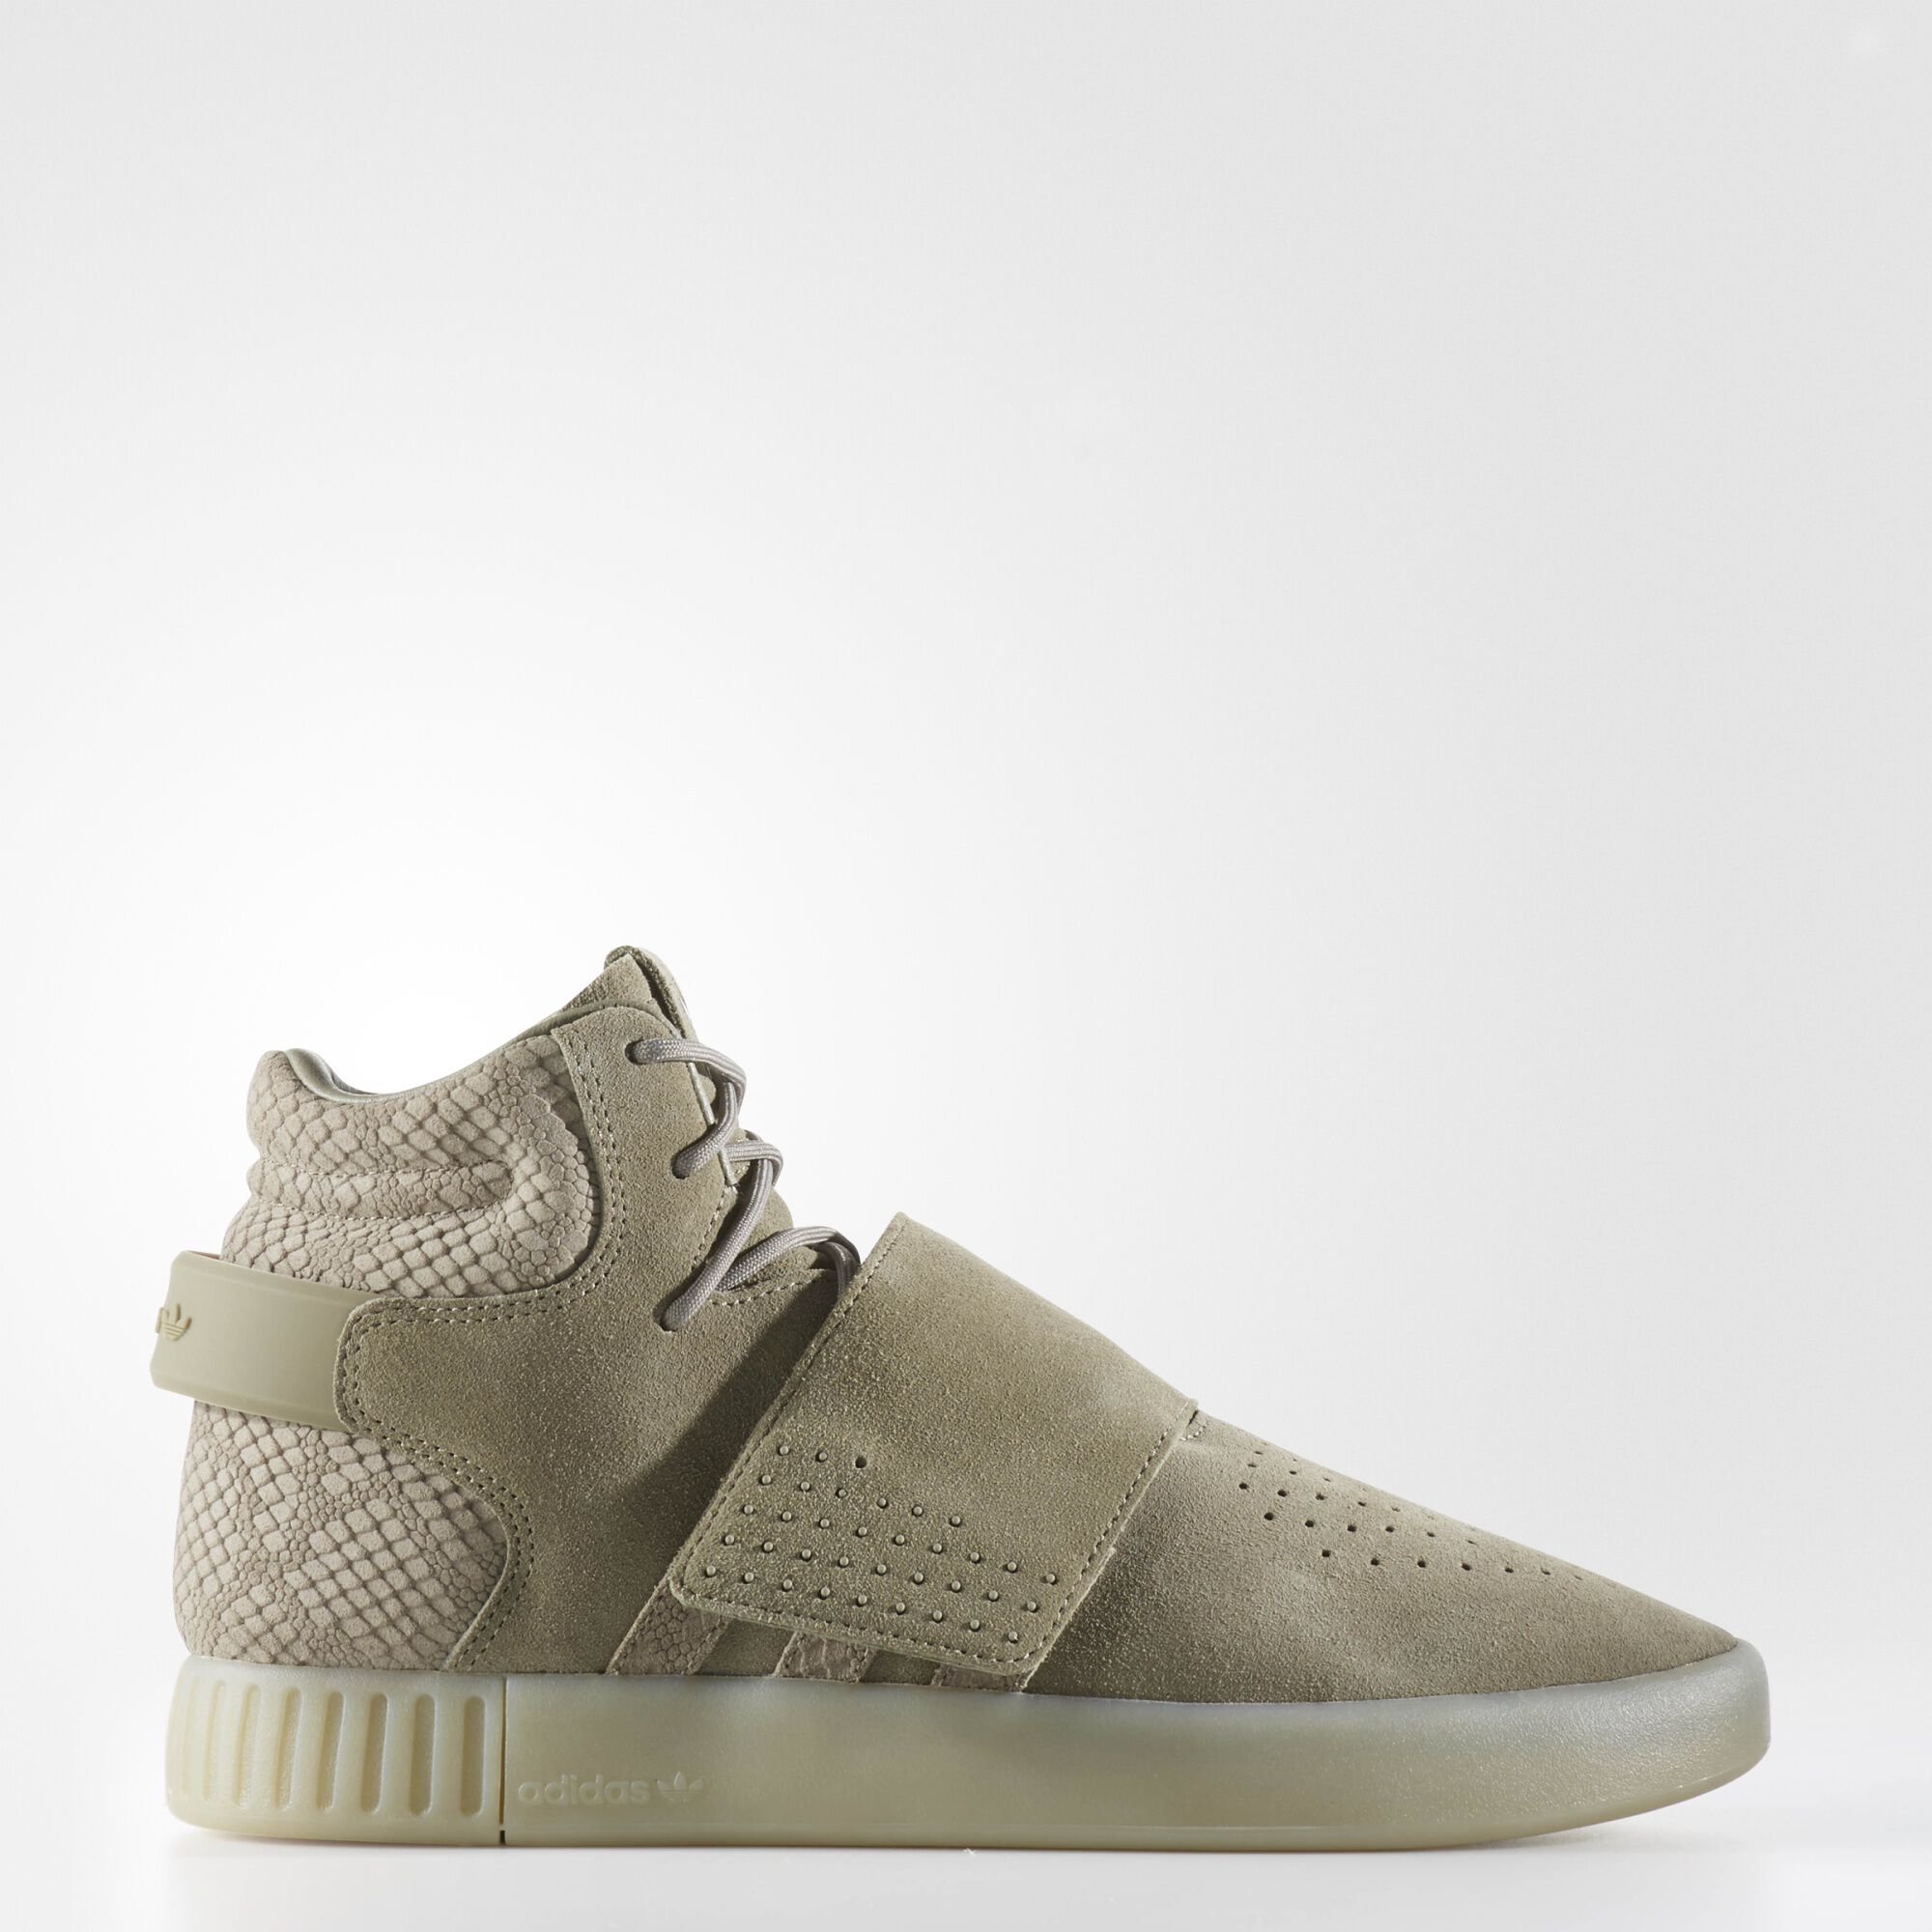 Tubular Invader Strap Shoes